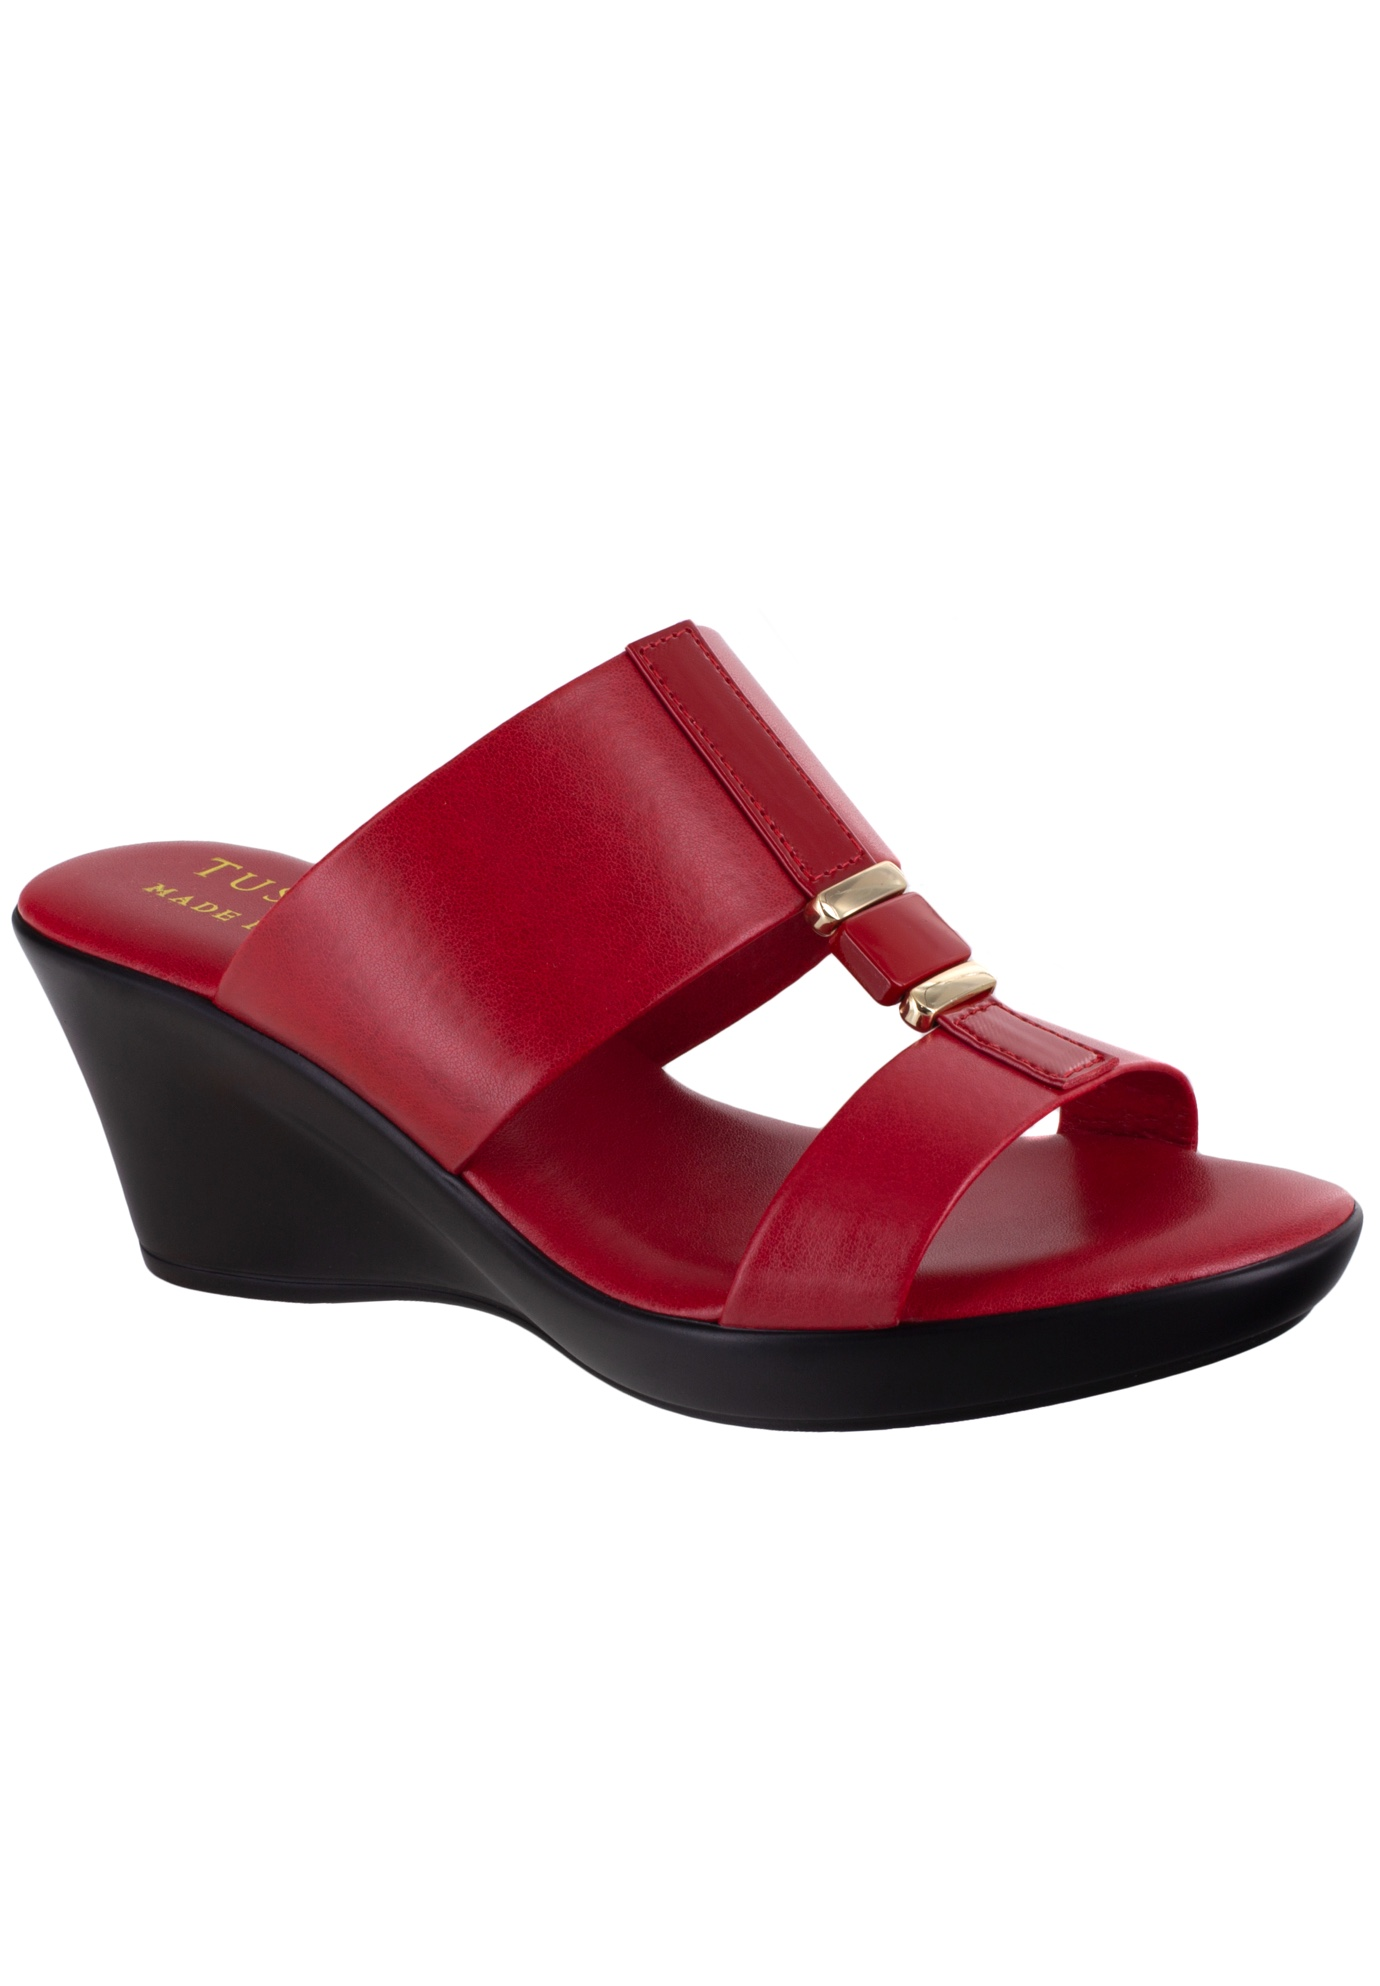 Benita Sandals by Easy Street,